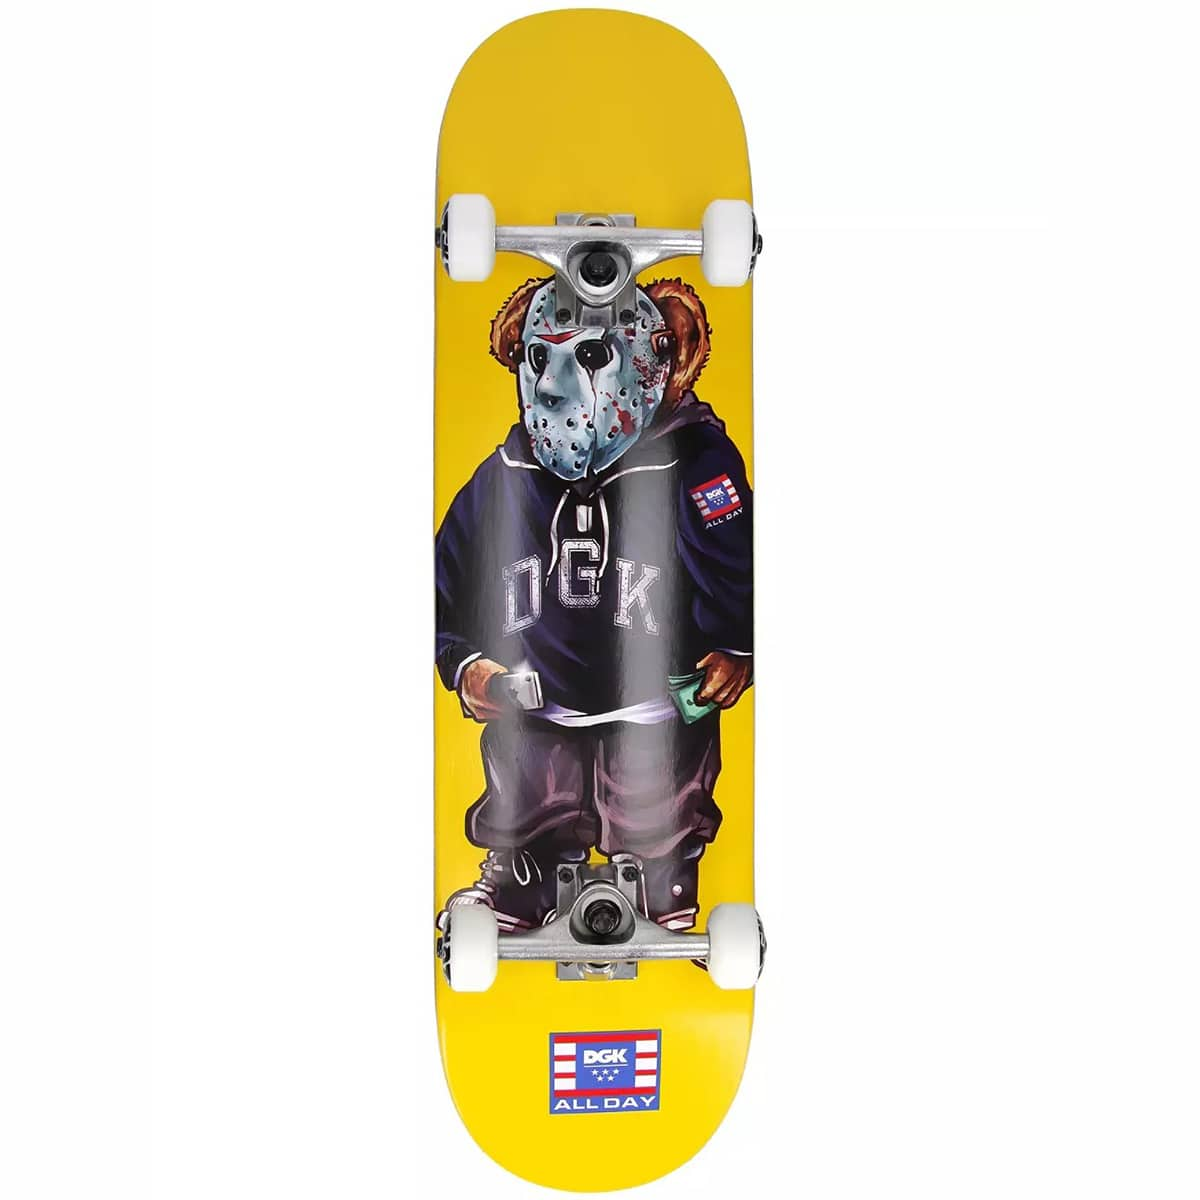 Skateboard complet DGK The Plug Yellow 8.25″